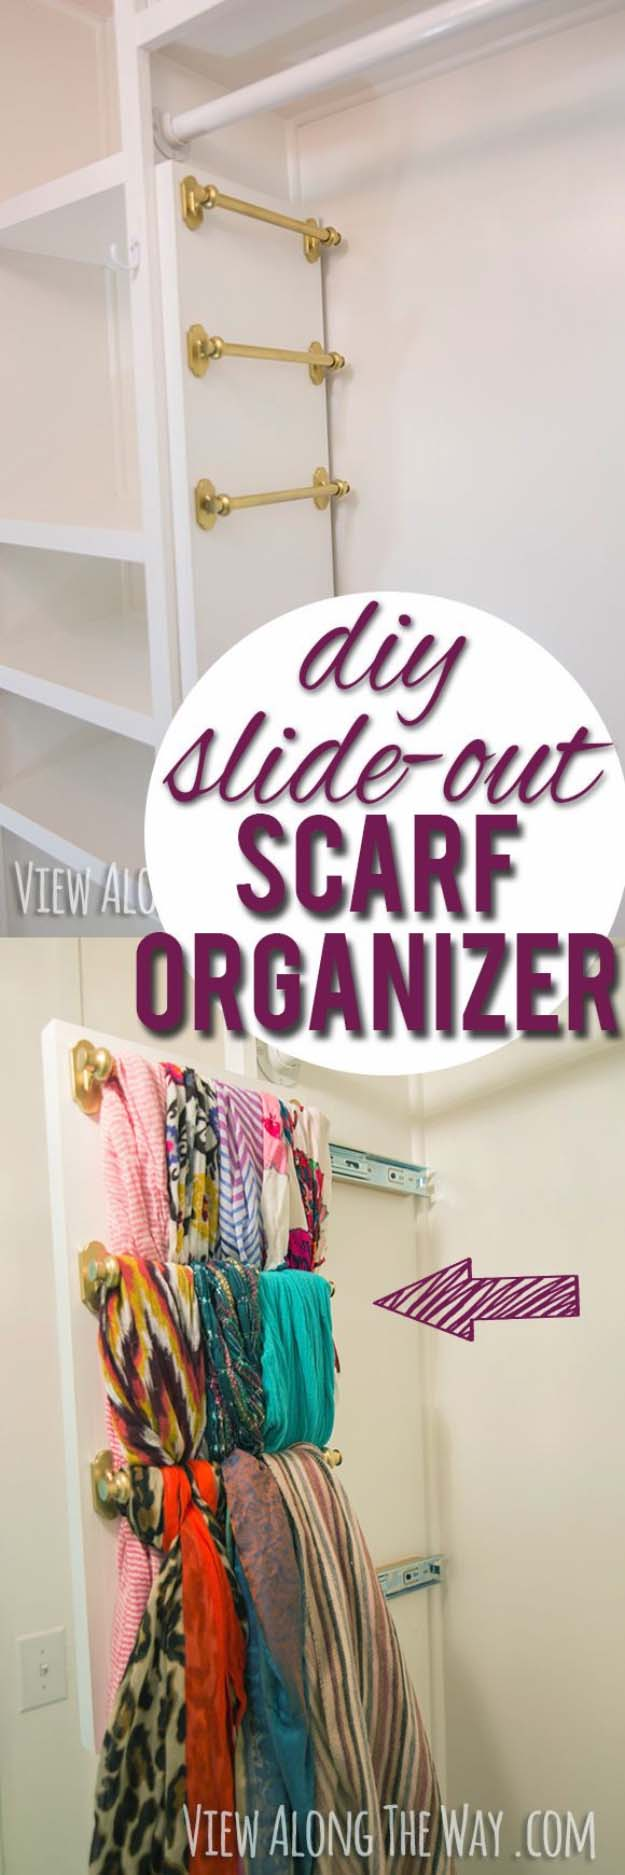 Closet Organizers Ideas Part - 50: DIY Closet Organization Ideas For Messy Closets And Small Spaces. Organizing  Hacks And Homemade Shelving